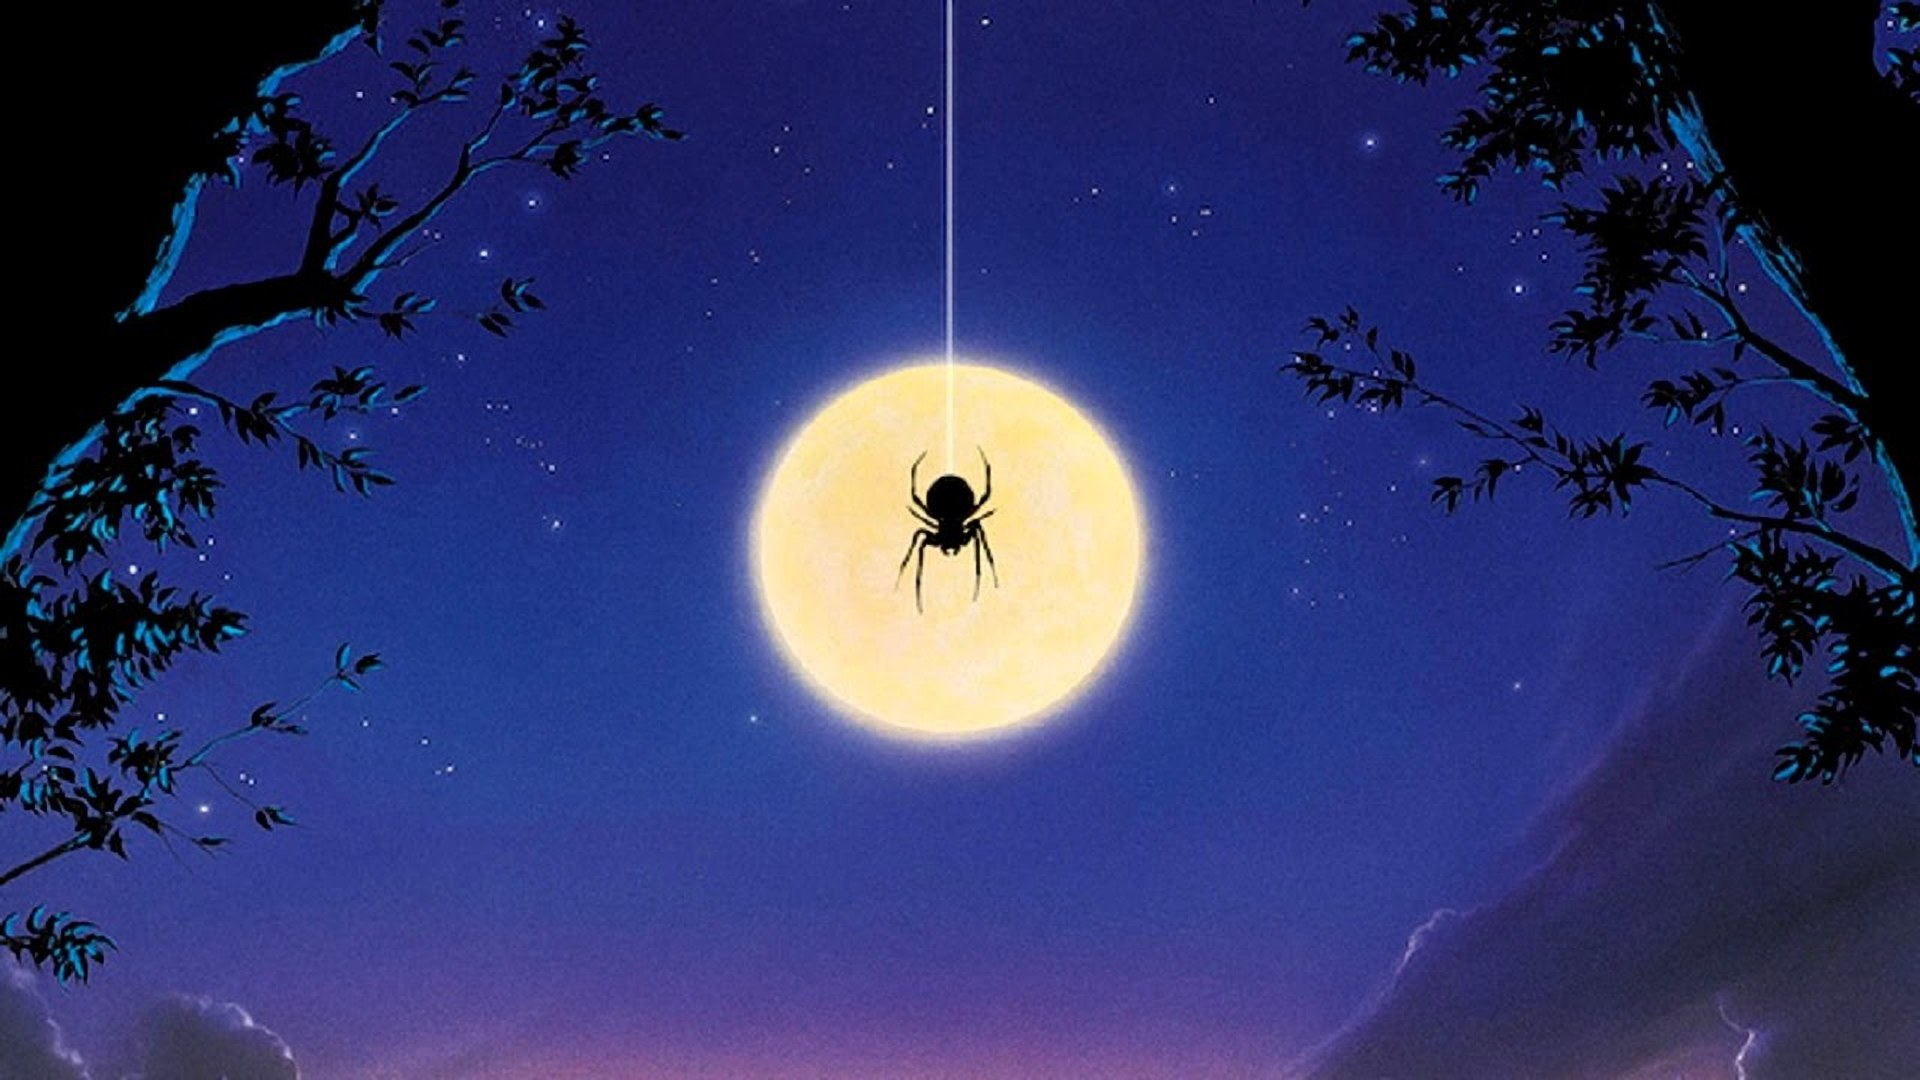 The poster for arachnophobia.